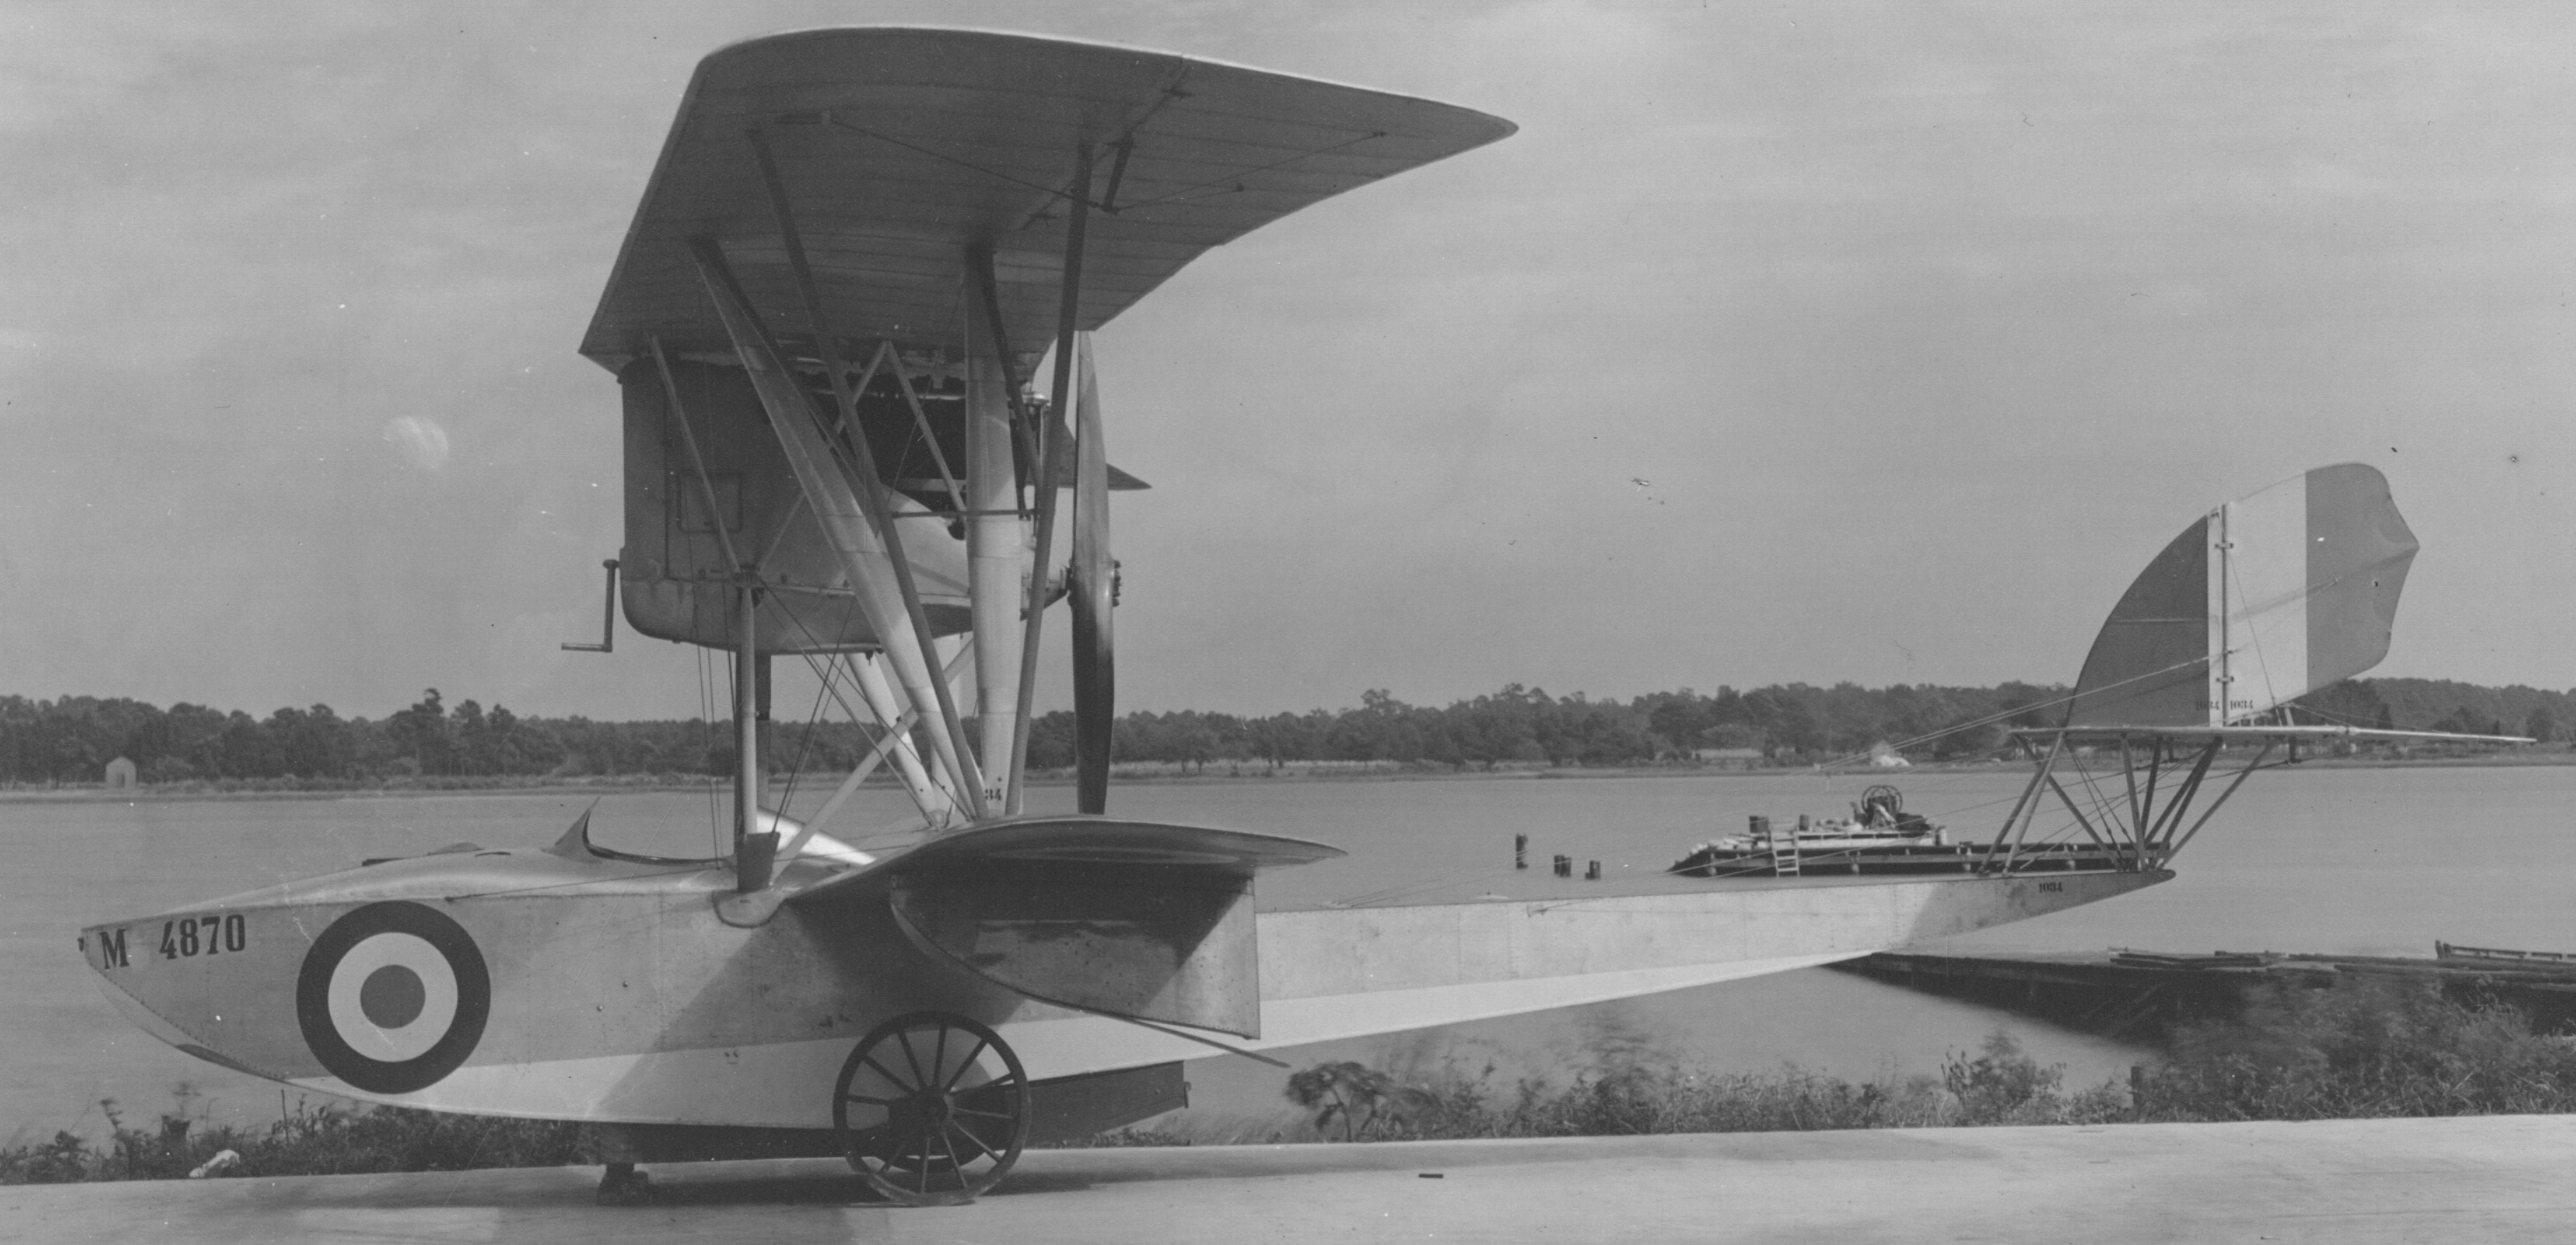 File:Airplanes - Types - Macchi Seaplane - Side View